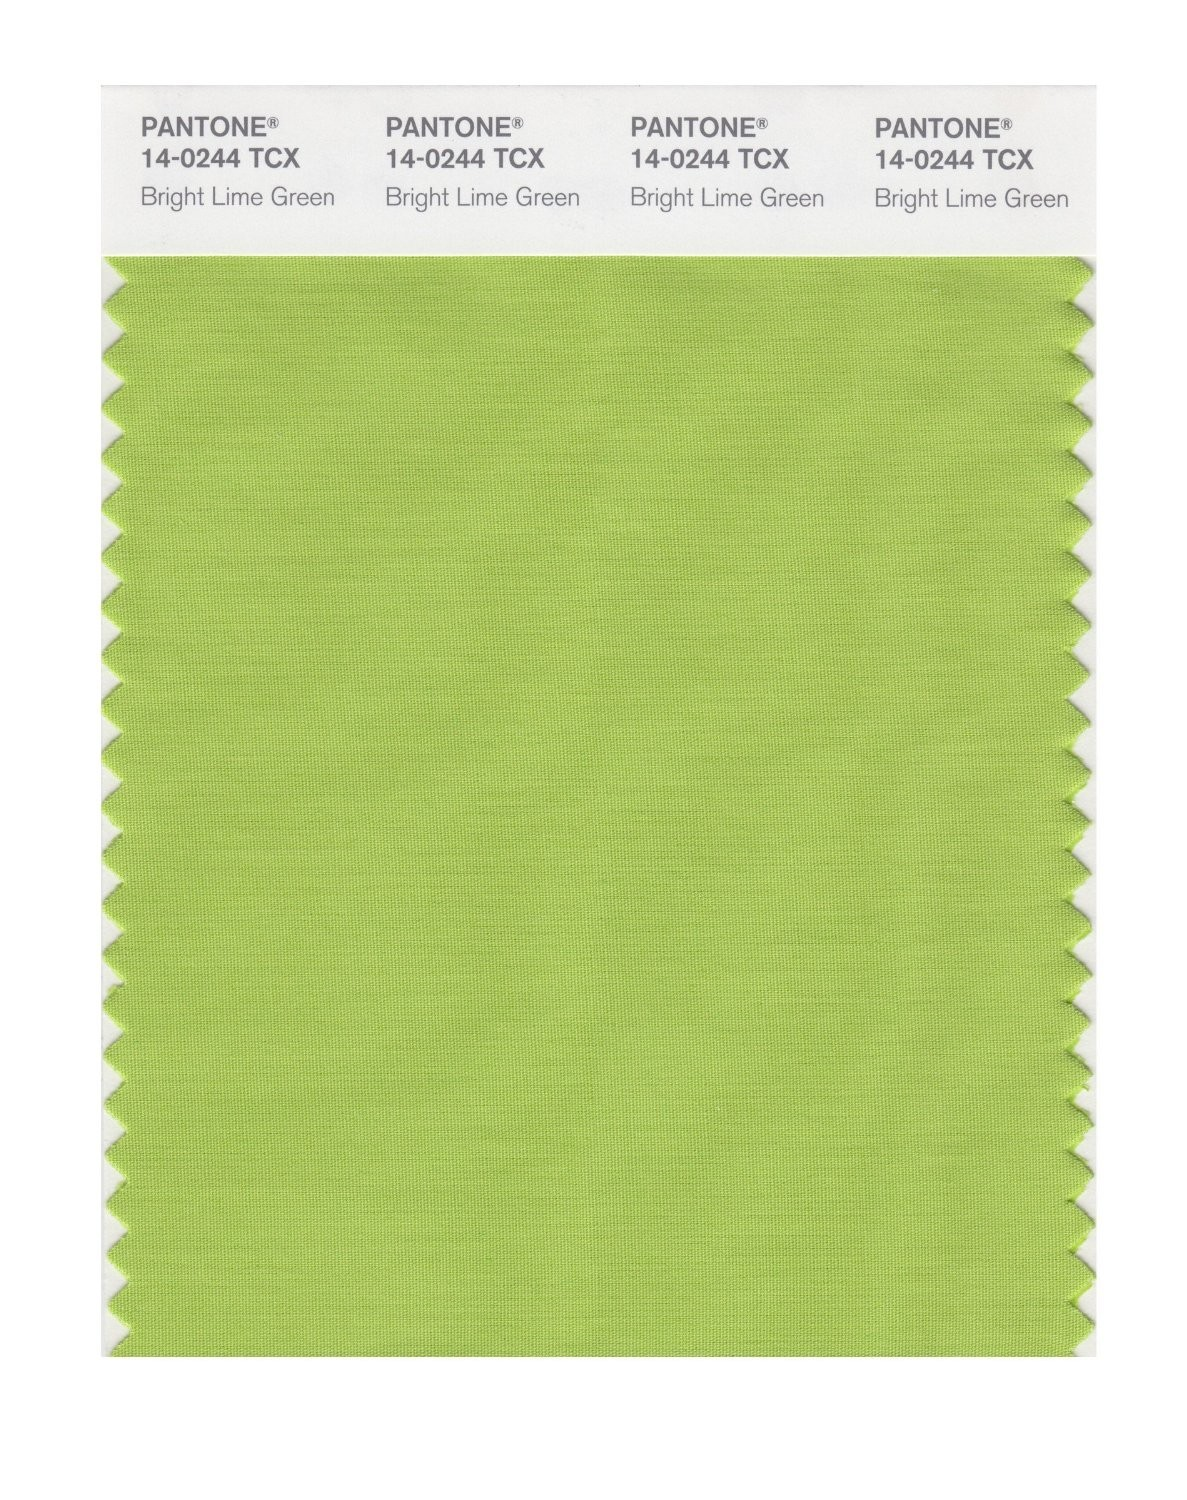 Pantone 14-0244 TCX Swatch Card Lime Green